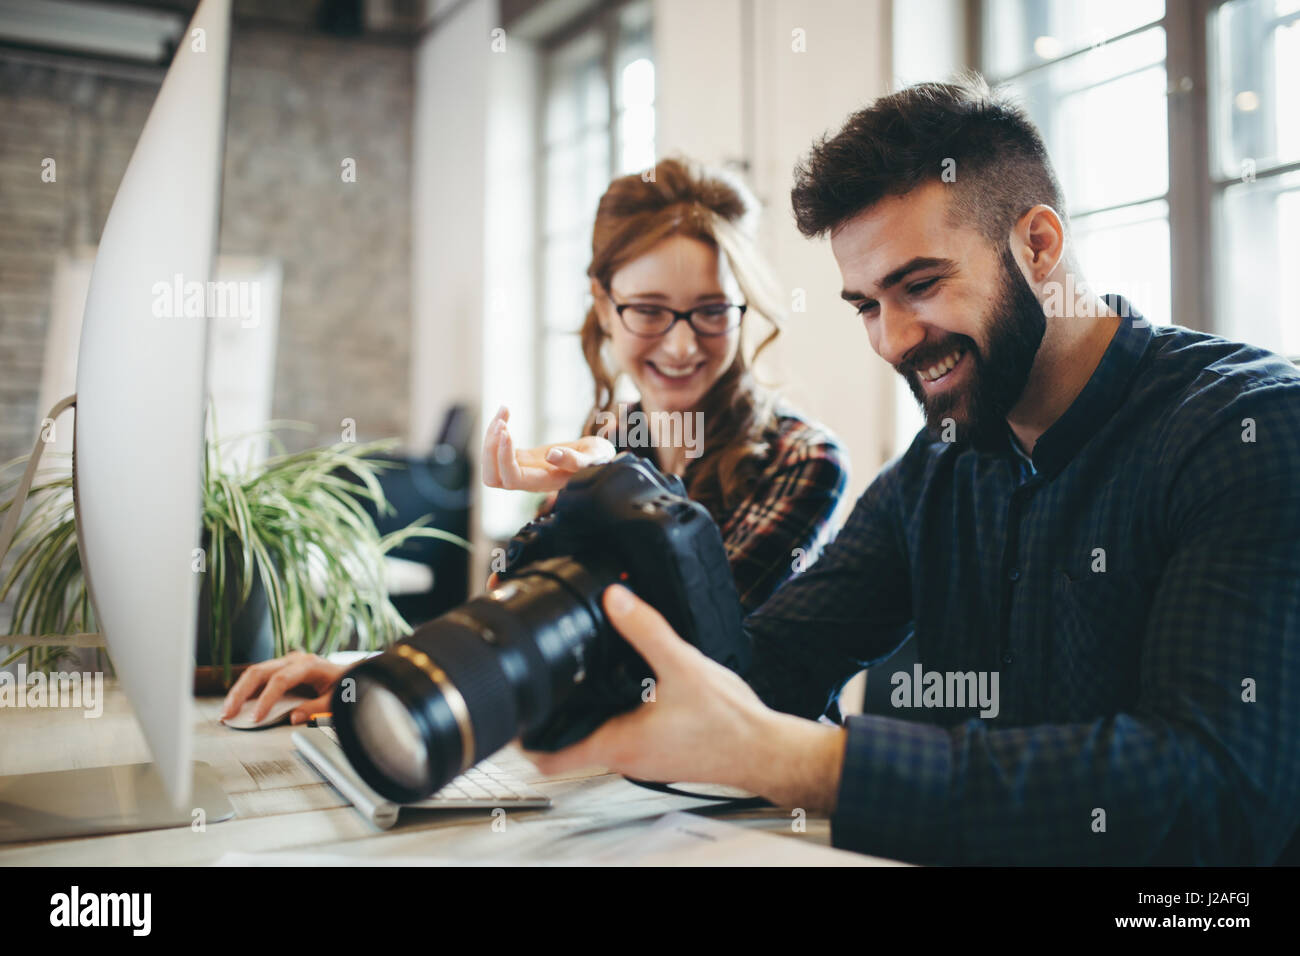 Company photo editor and photographer working together in office - Stock Image